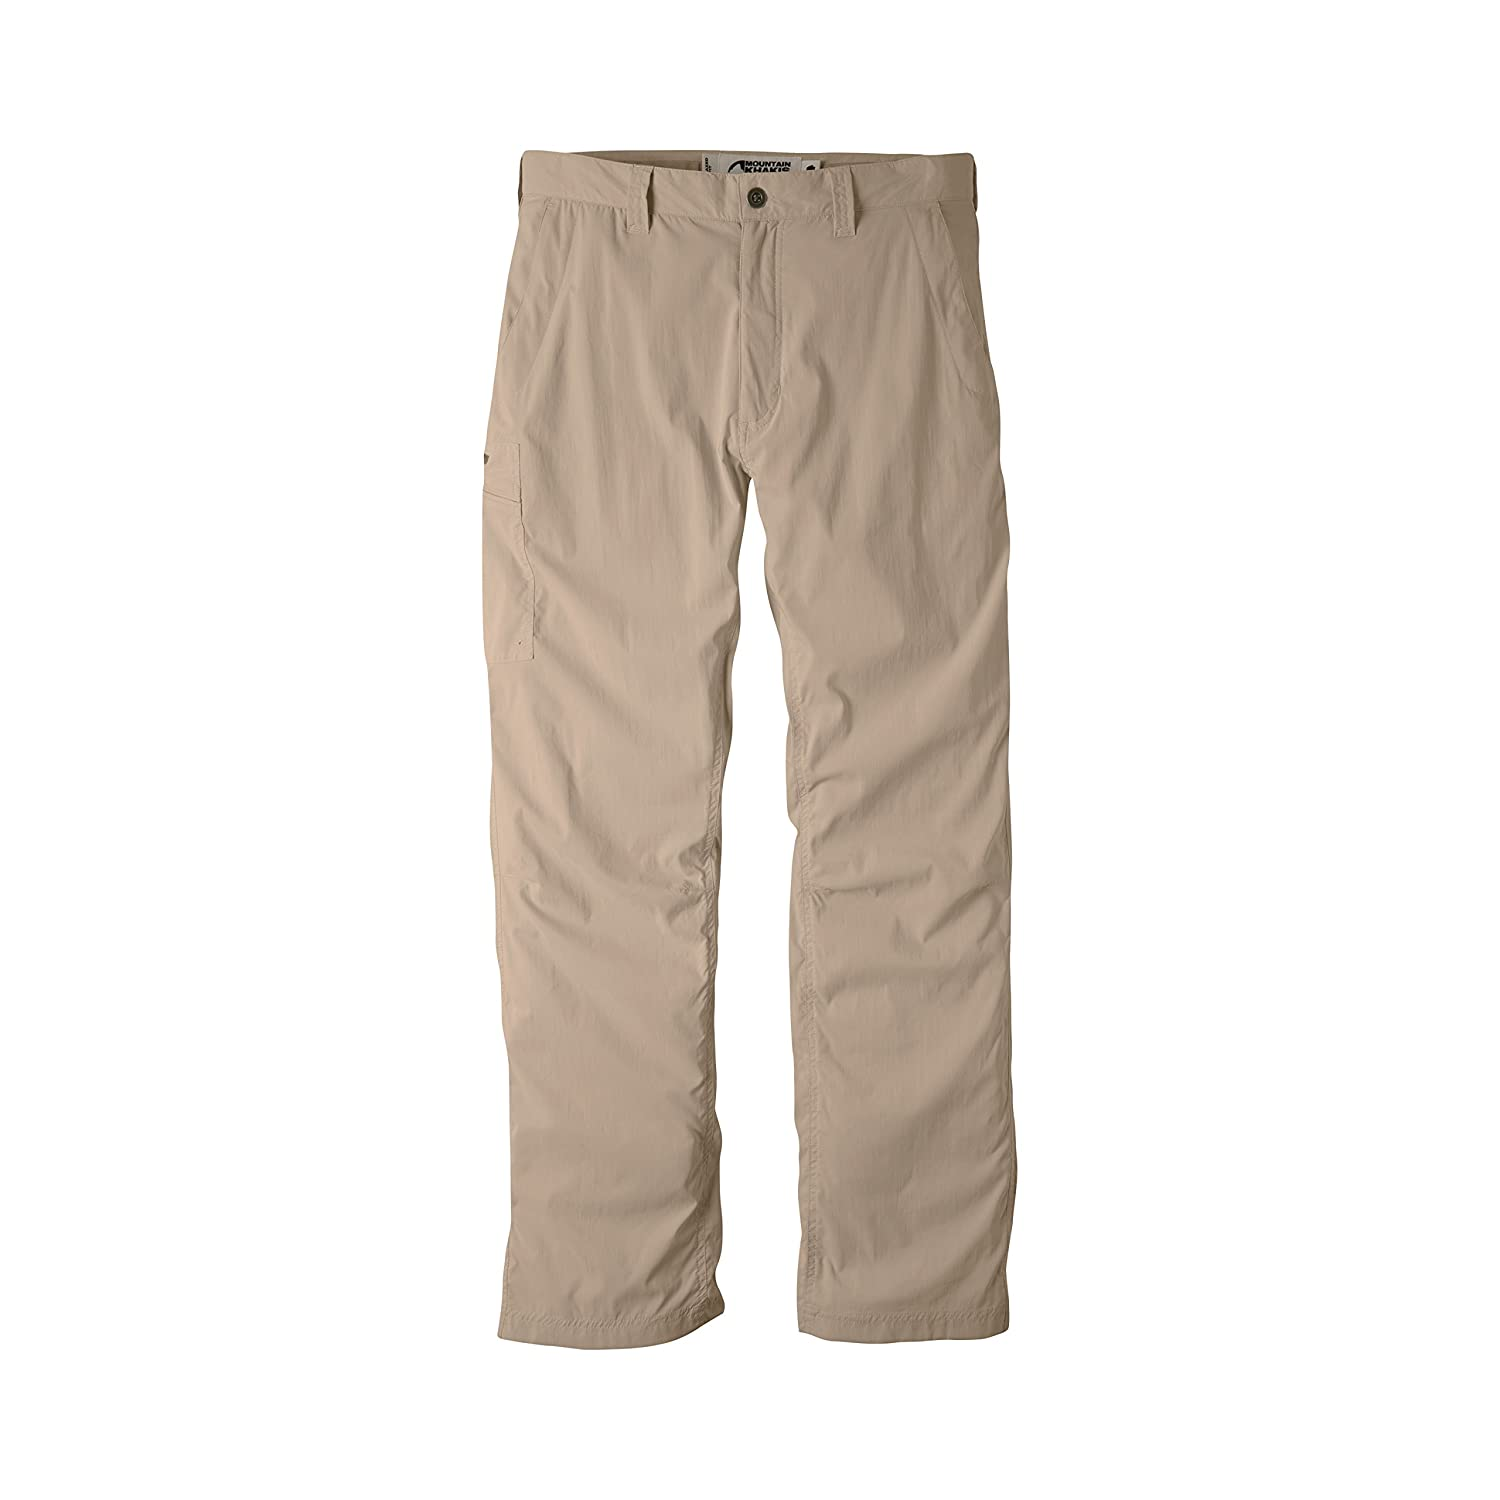 Mountain Khakis Mens Equatorial Stretch Pant Relaxed Fit Best Outdoor UPF Stretch Pant